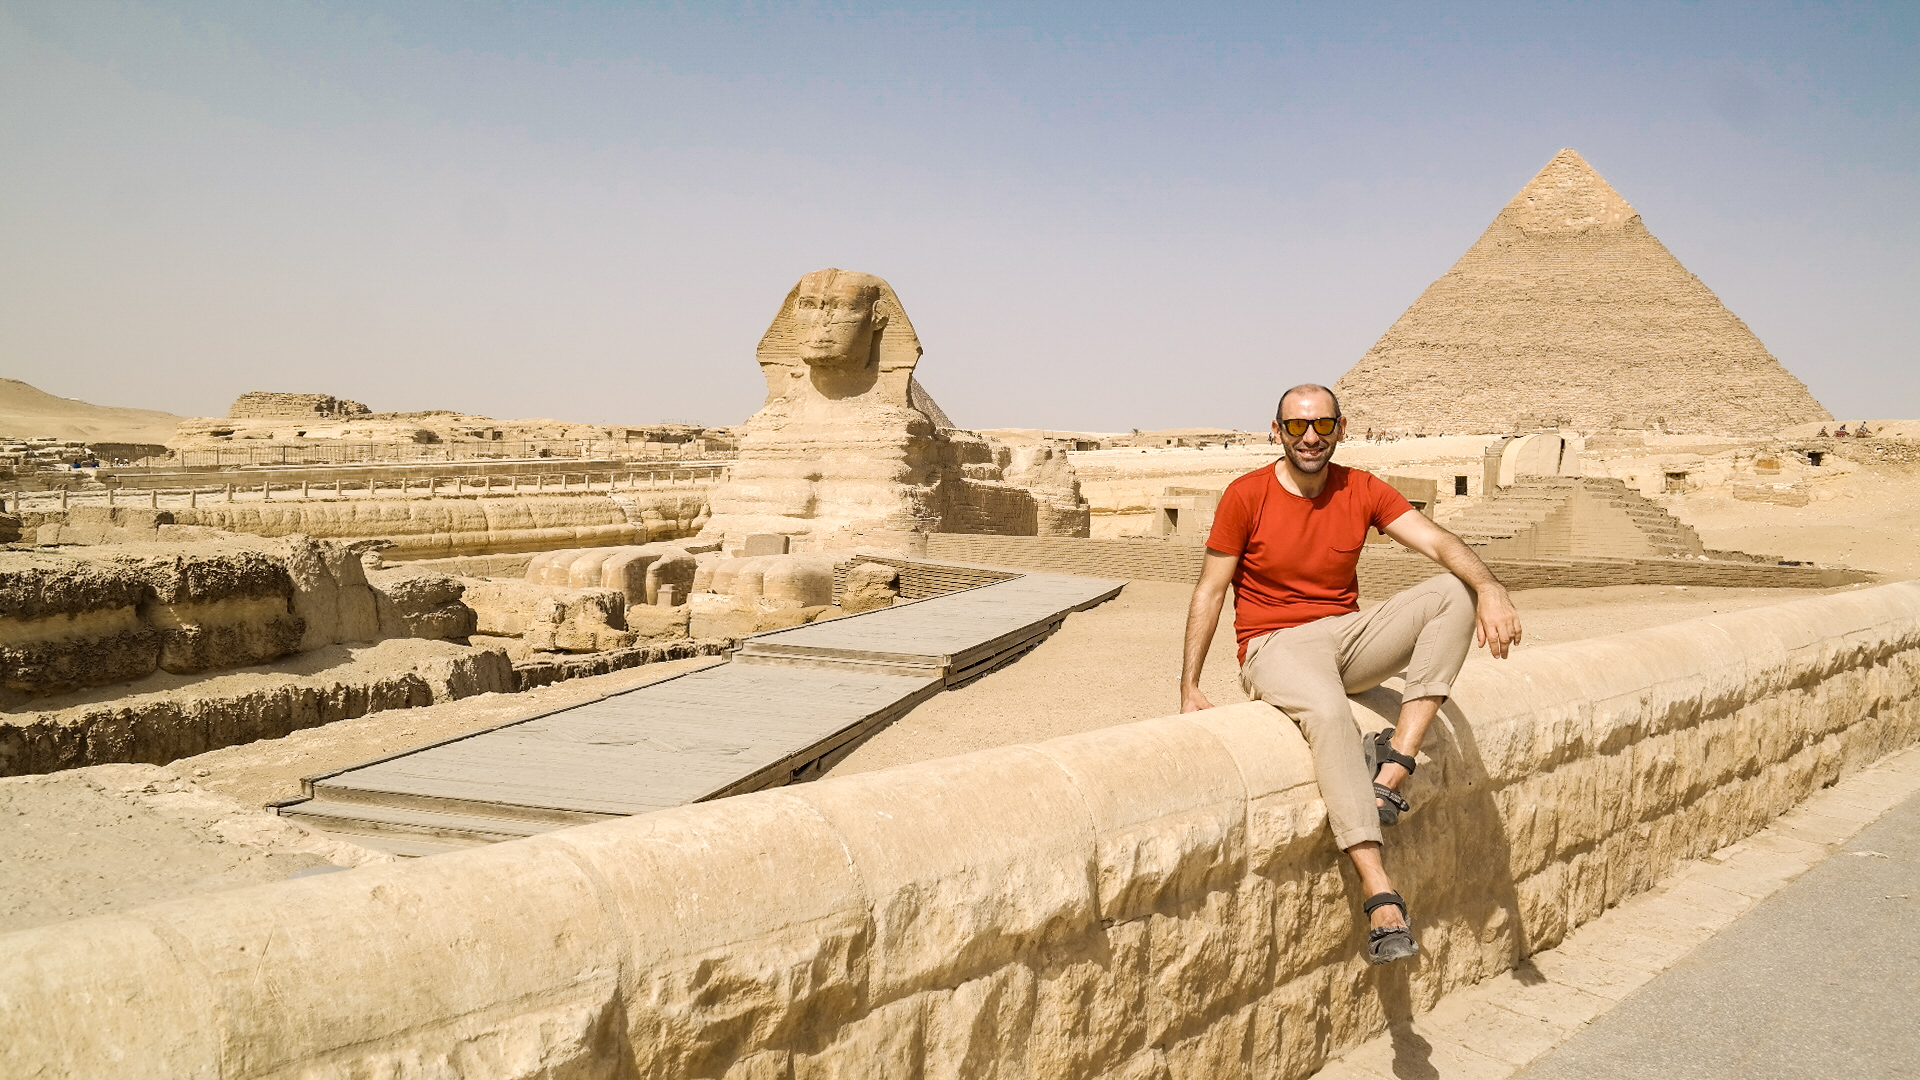 Best Egypt Travel - Visit the Pyramids and the Sphynx without a guide